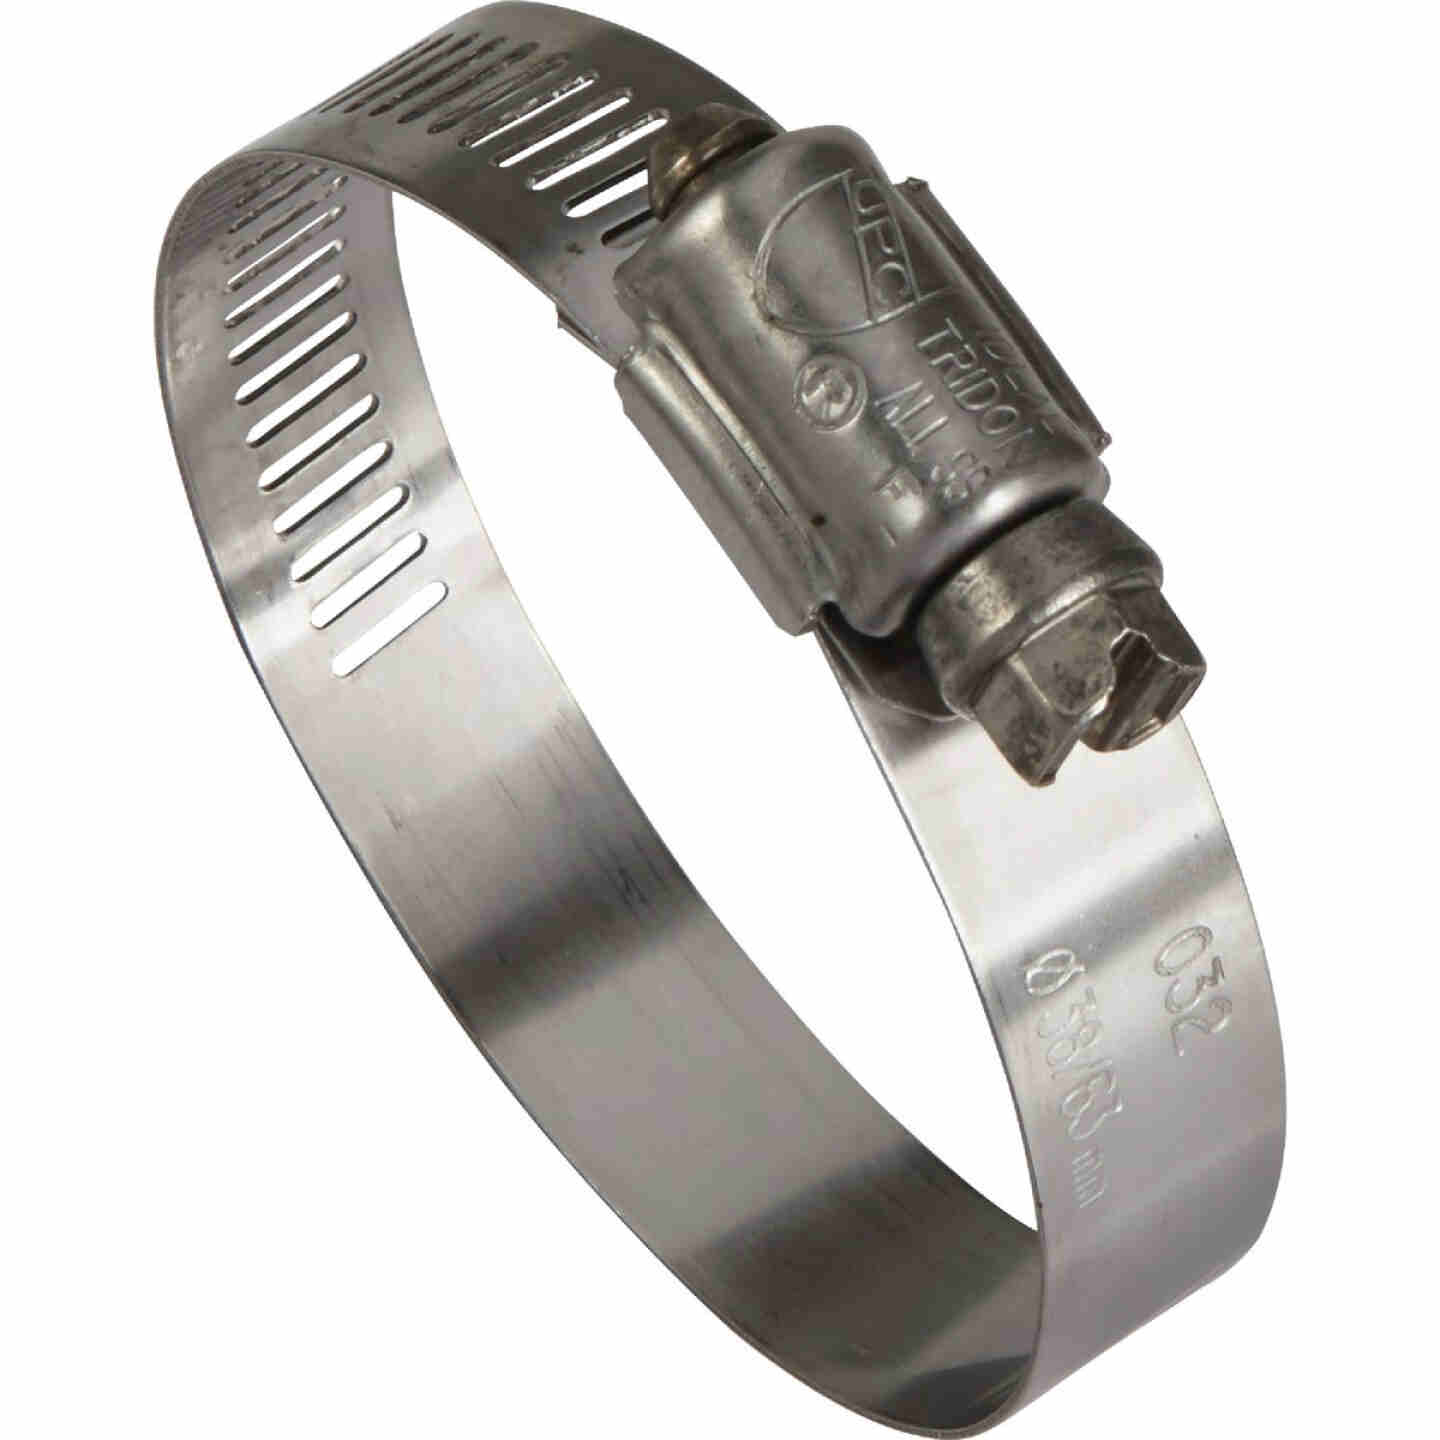 Ideal 1-1/2 In. - 2-1/2 In. 67 All Stainless Steel Hose Clamp Image 1